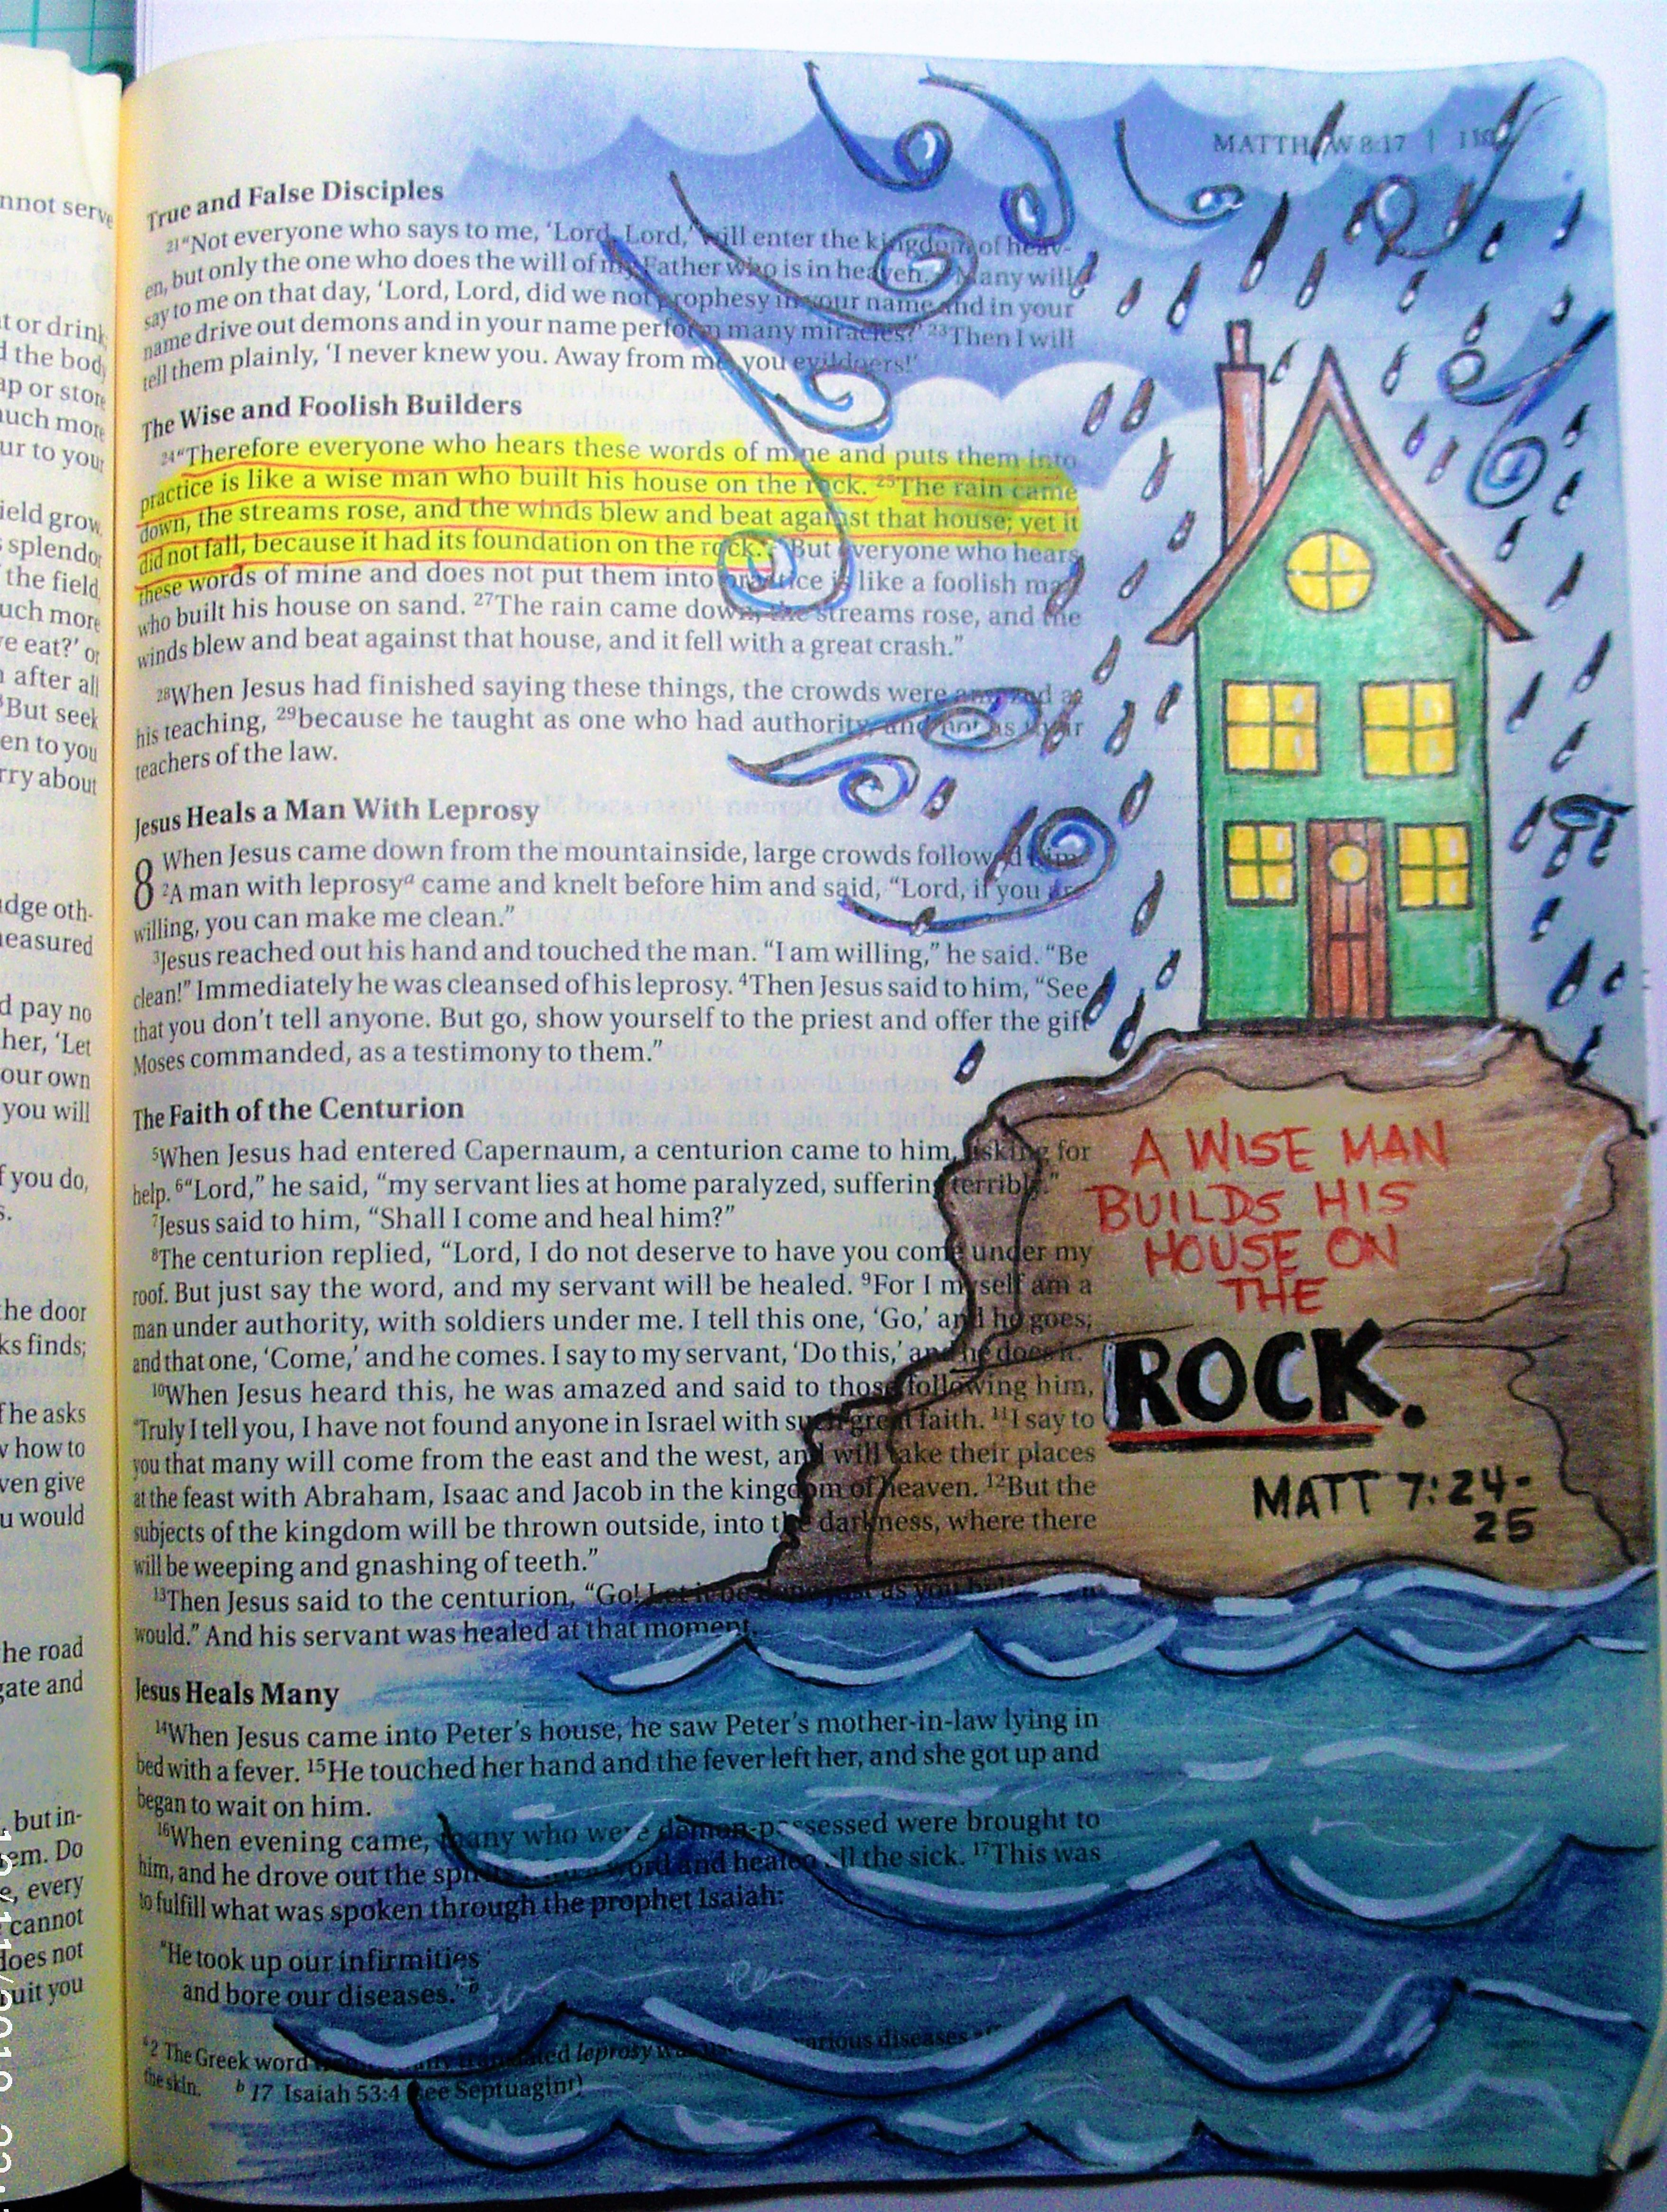 matthew 7 24 25 a wise man builds his house on the rock nicole s rh pinterest com